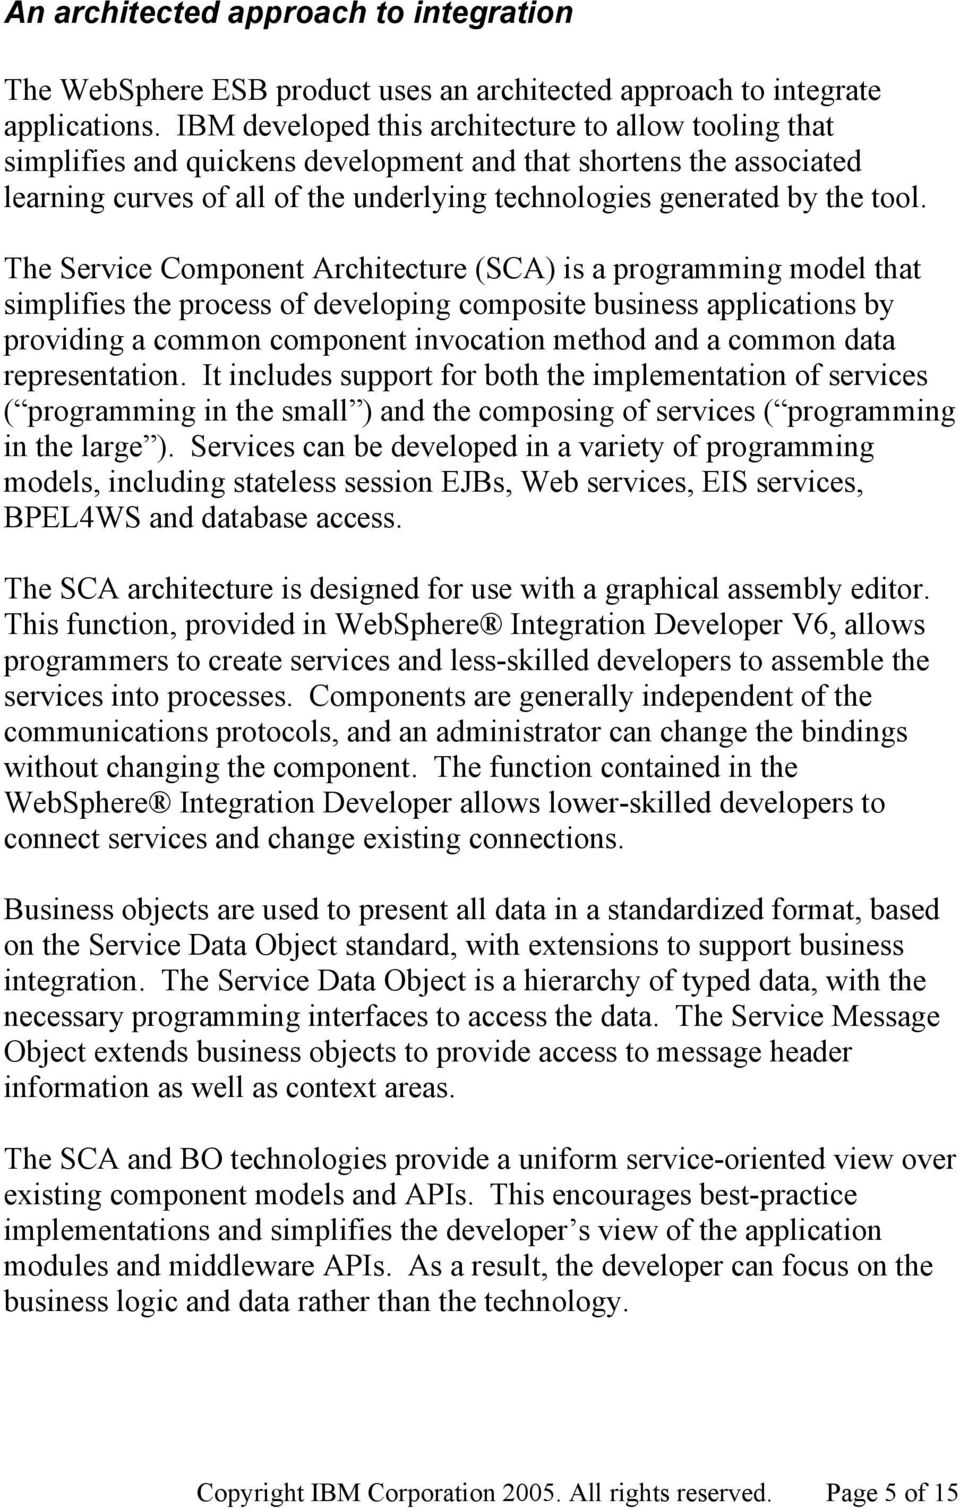 The Service Component Architecture (SCA) is a programming model that simplifies the process of developing composite business applications by providing a common component invocation method and a